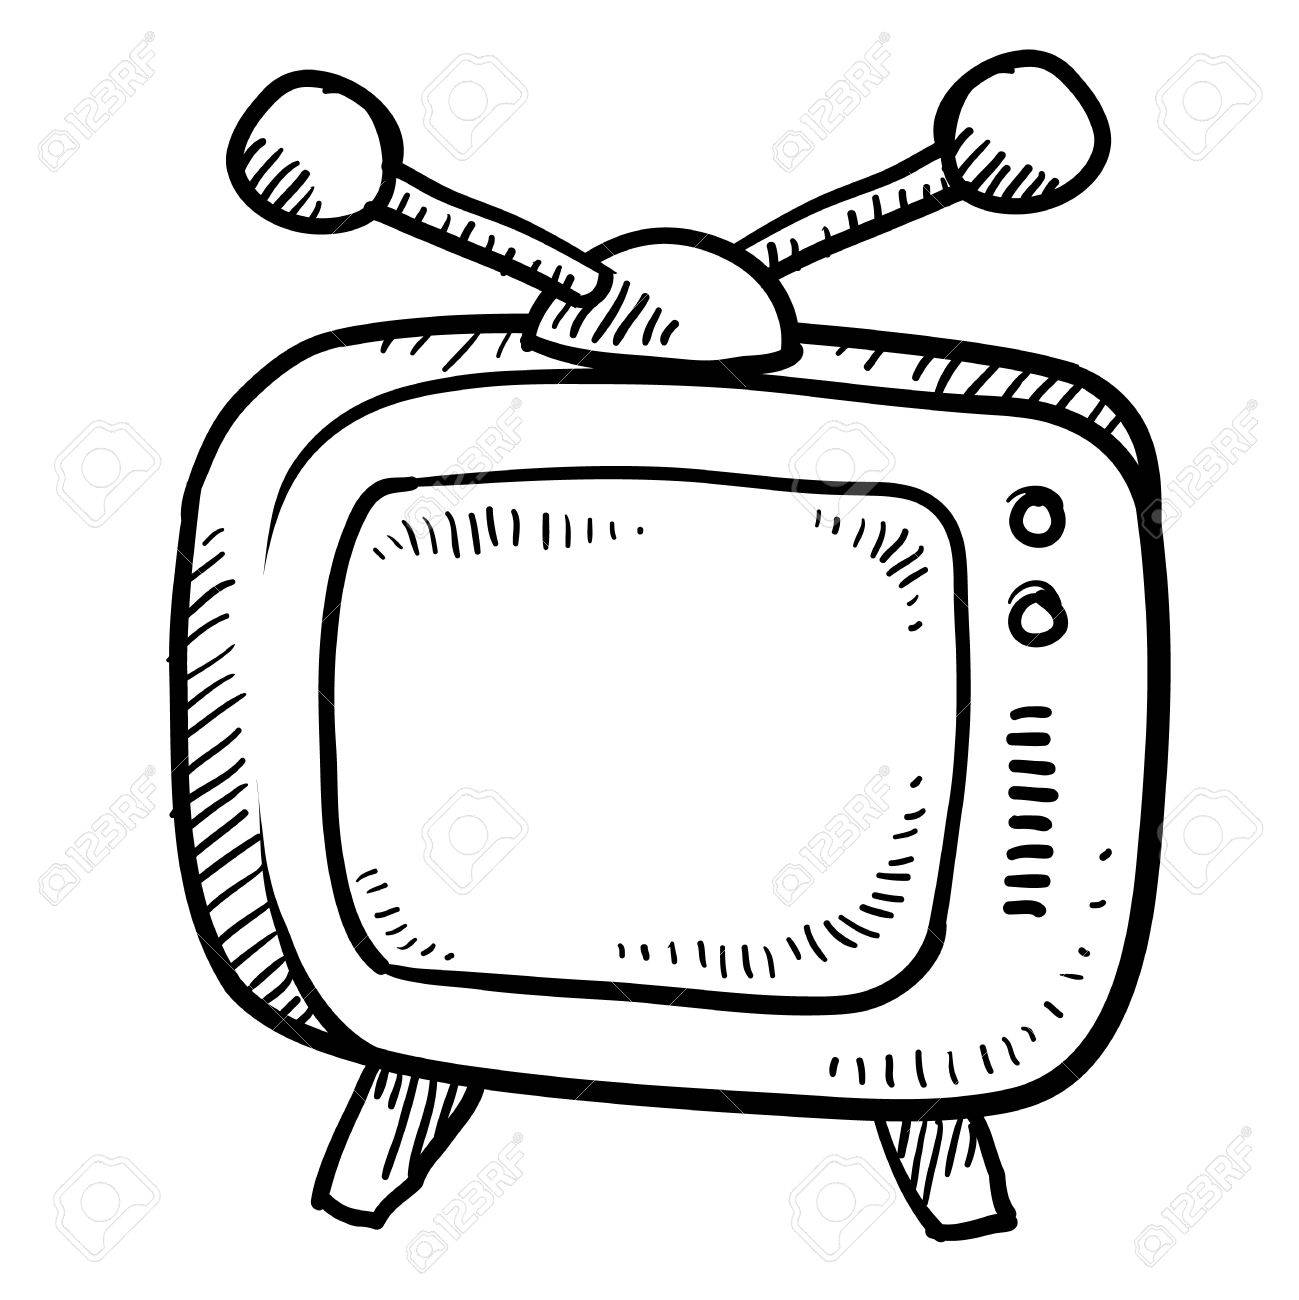 Doodle style retro television illustration or media icon suitable for web, print, or advertising use. Stock Illustration - 11790090